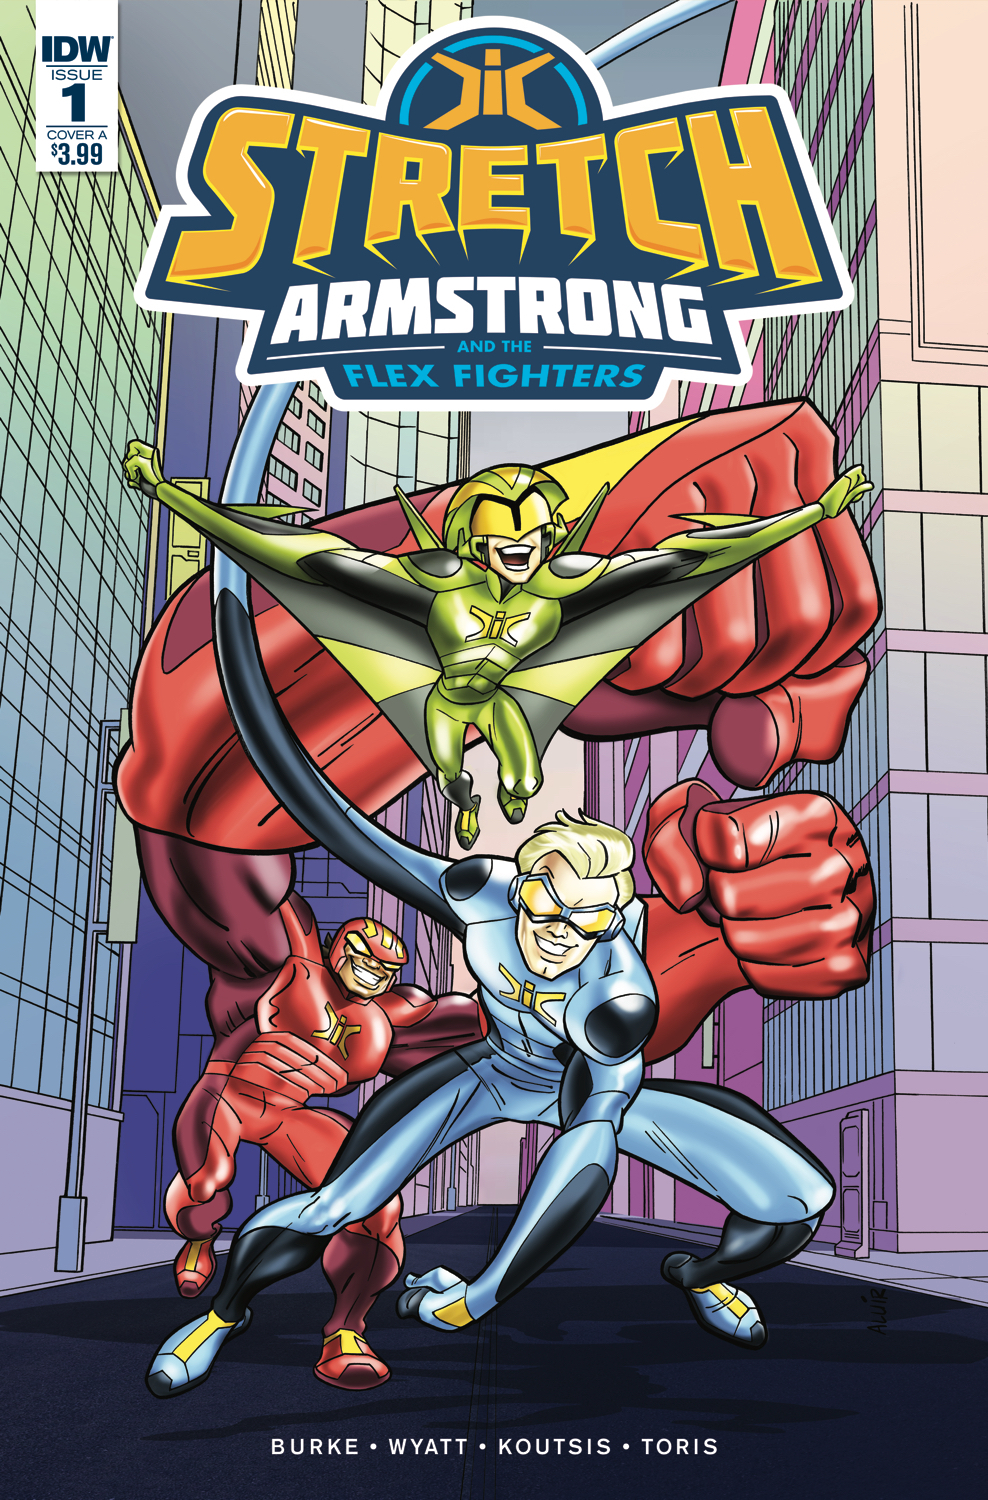 STRETCH ARMSTRONG & FLEX FIGHTERS #2